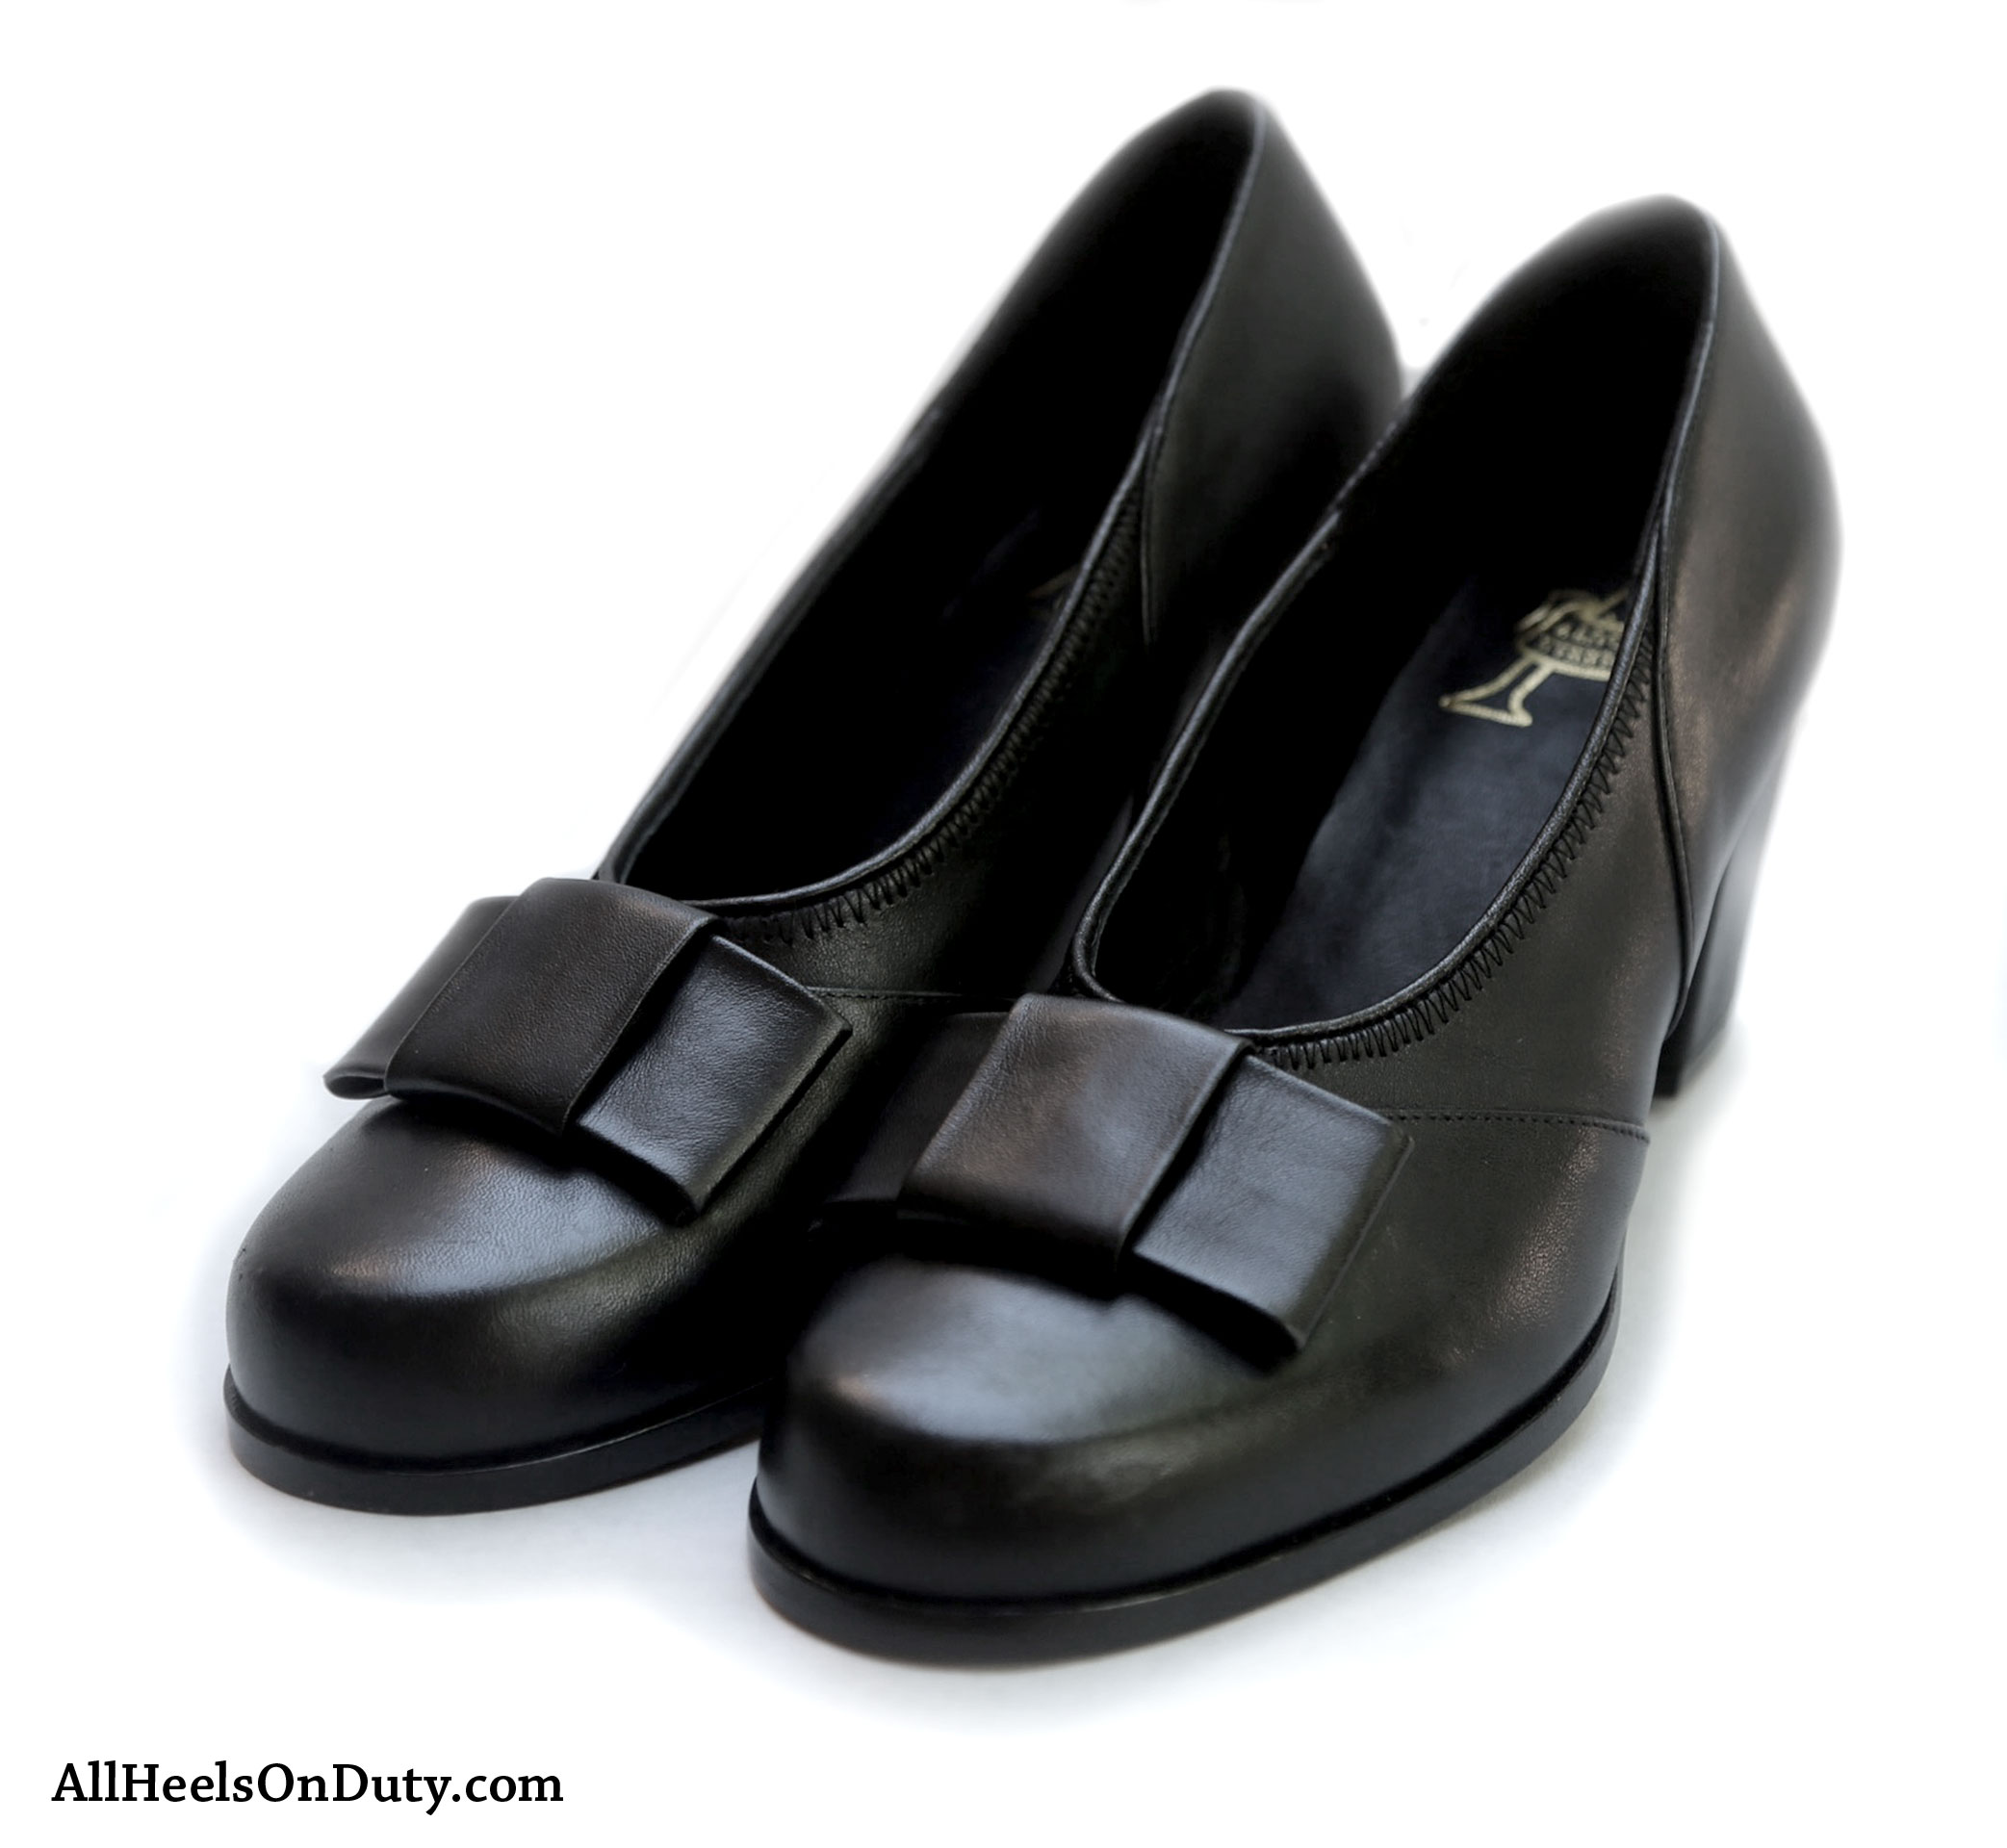 1940s Black Bow Pumps - Make Way for